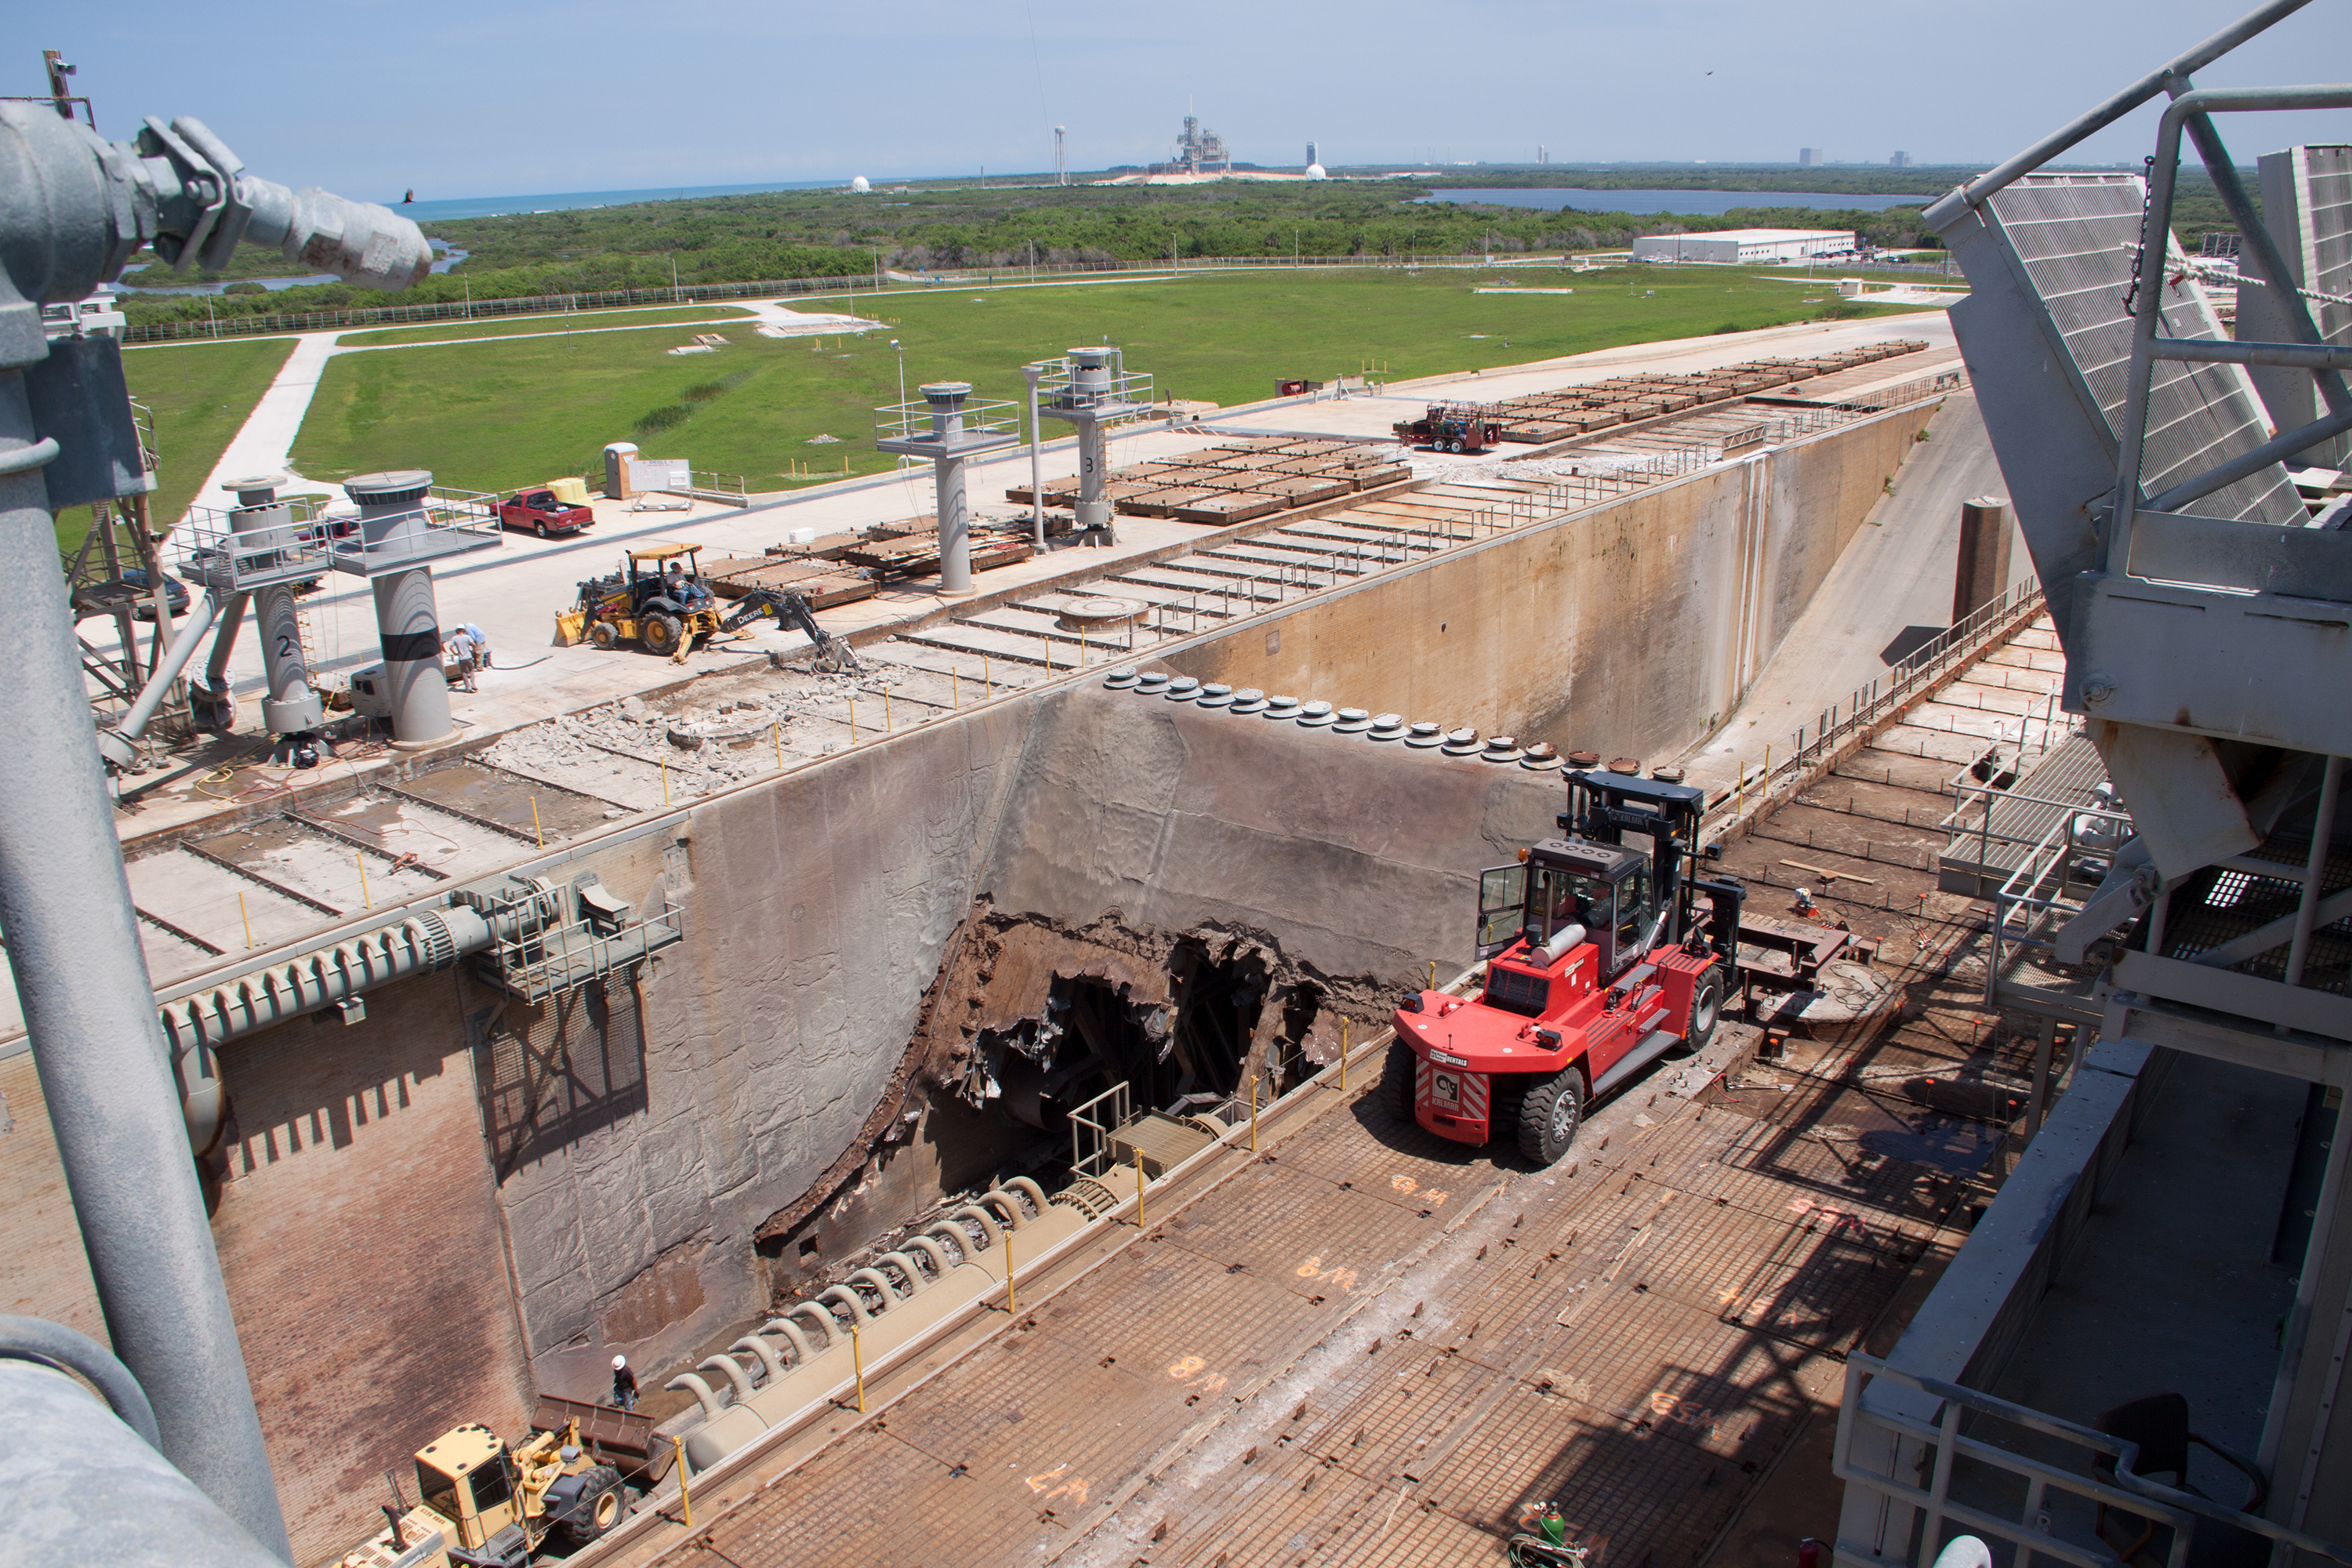 Nasa New Flame Trench Will Support New Era At Launch Pad 39b